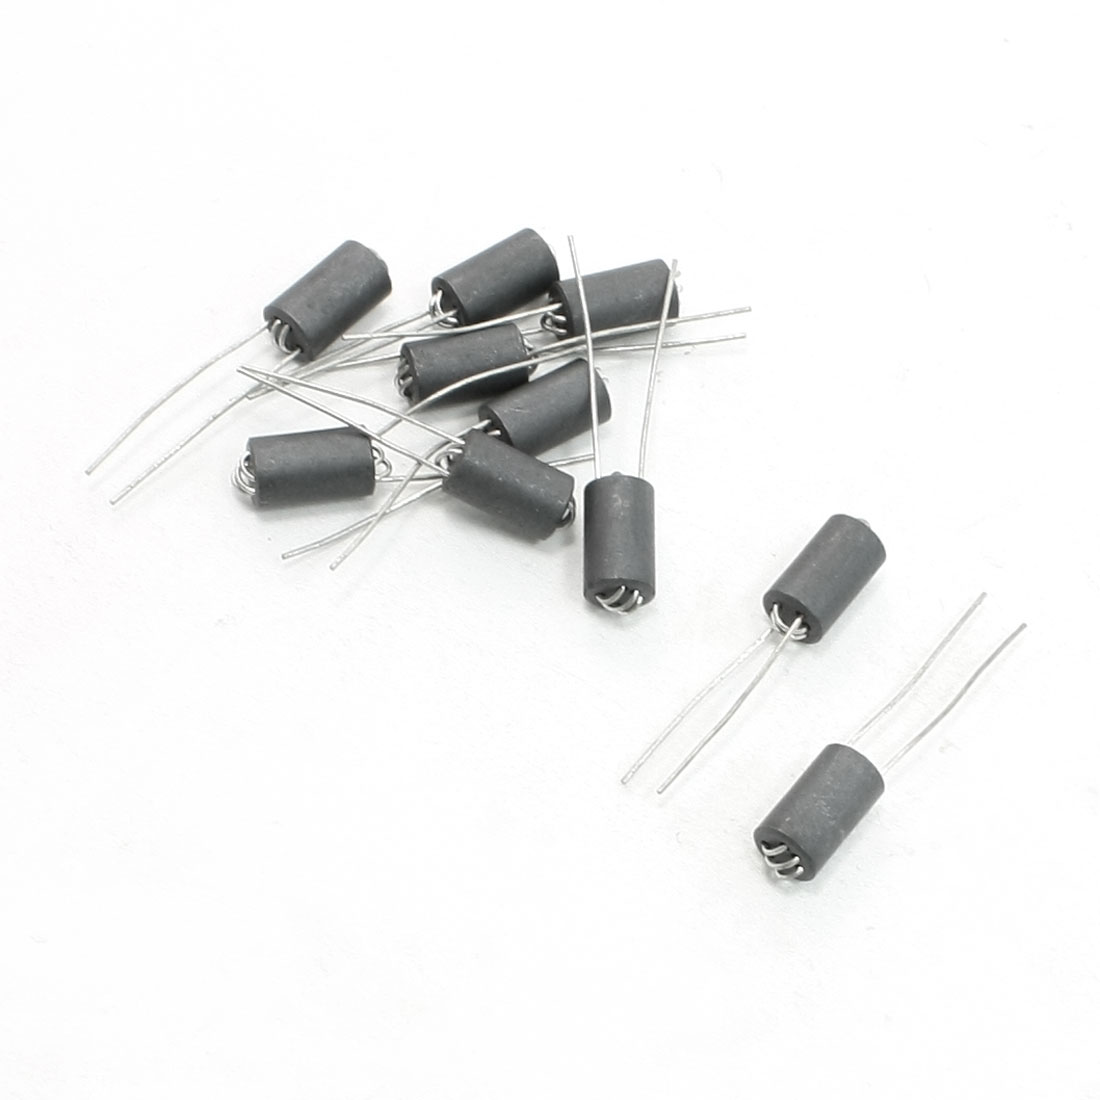 6mm x 10mm x 0.8mm Axial Lead 6 Channel Ferrite Beads Inductors 10 Pcs